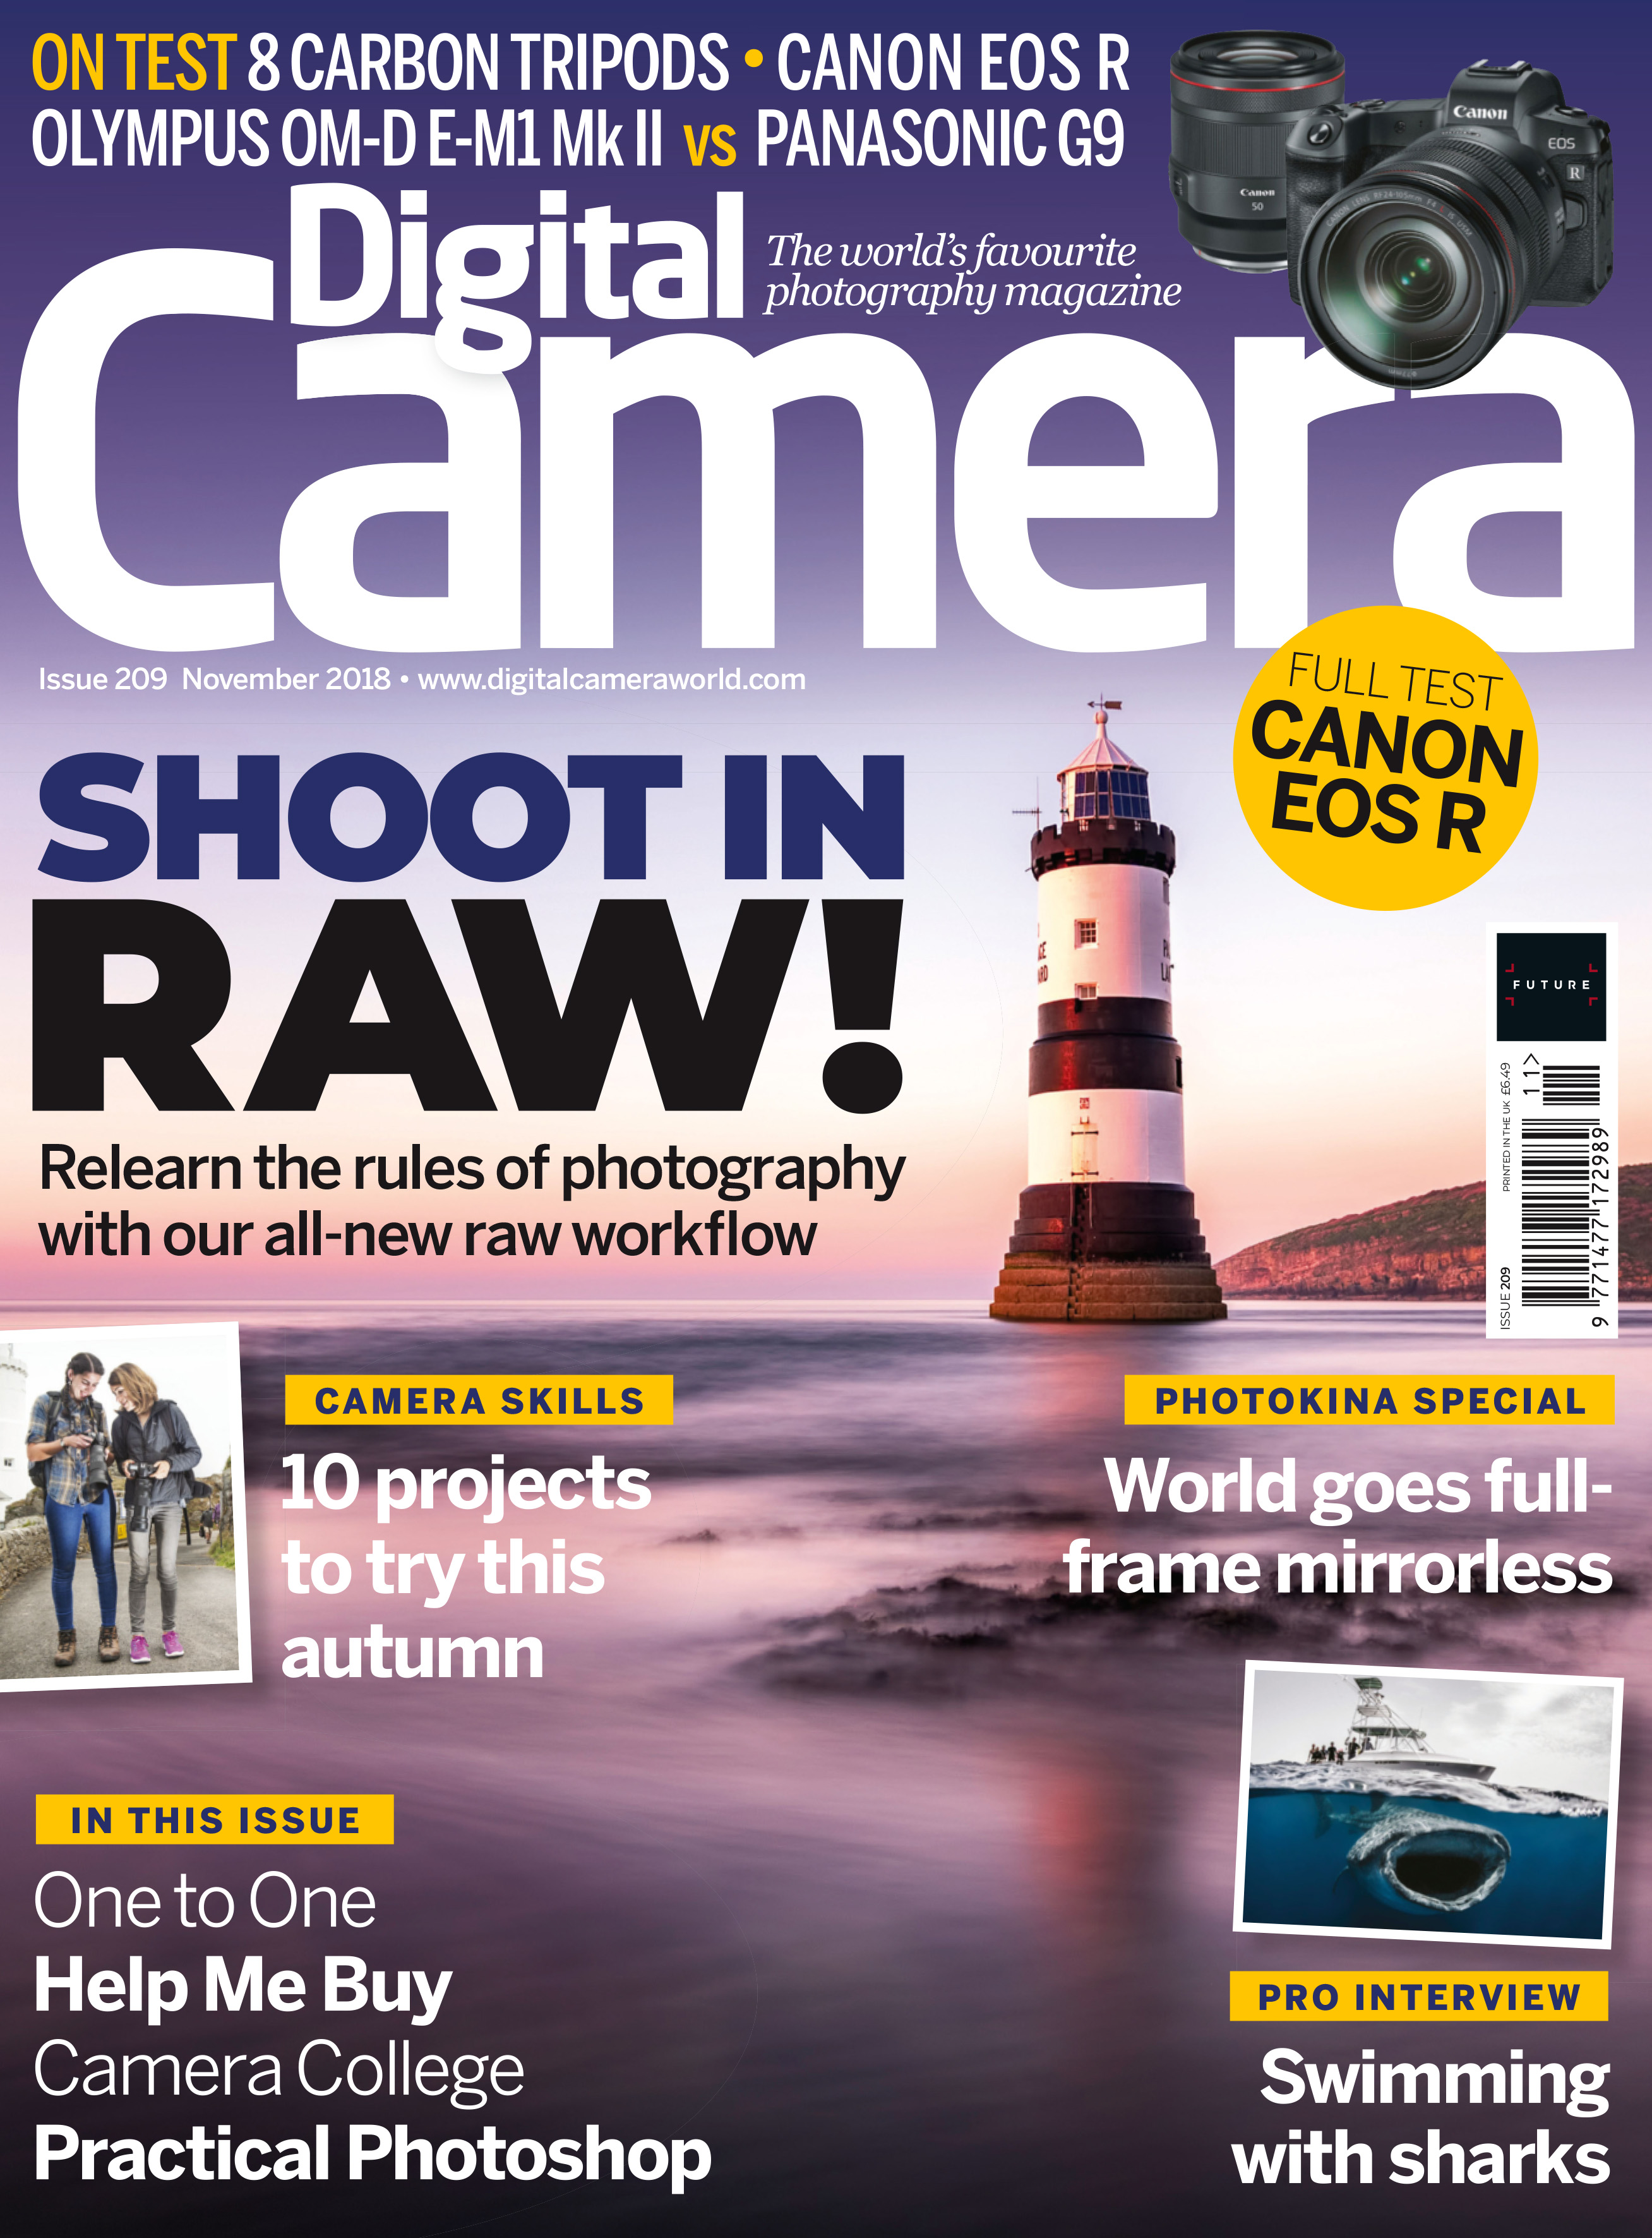 Get a 2019 photo tips calendar with the new issue of Digital Camera magazine